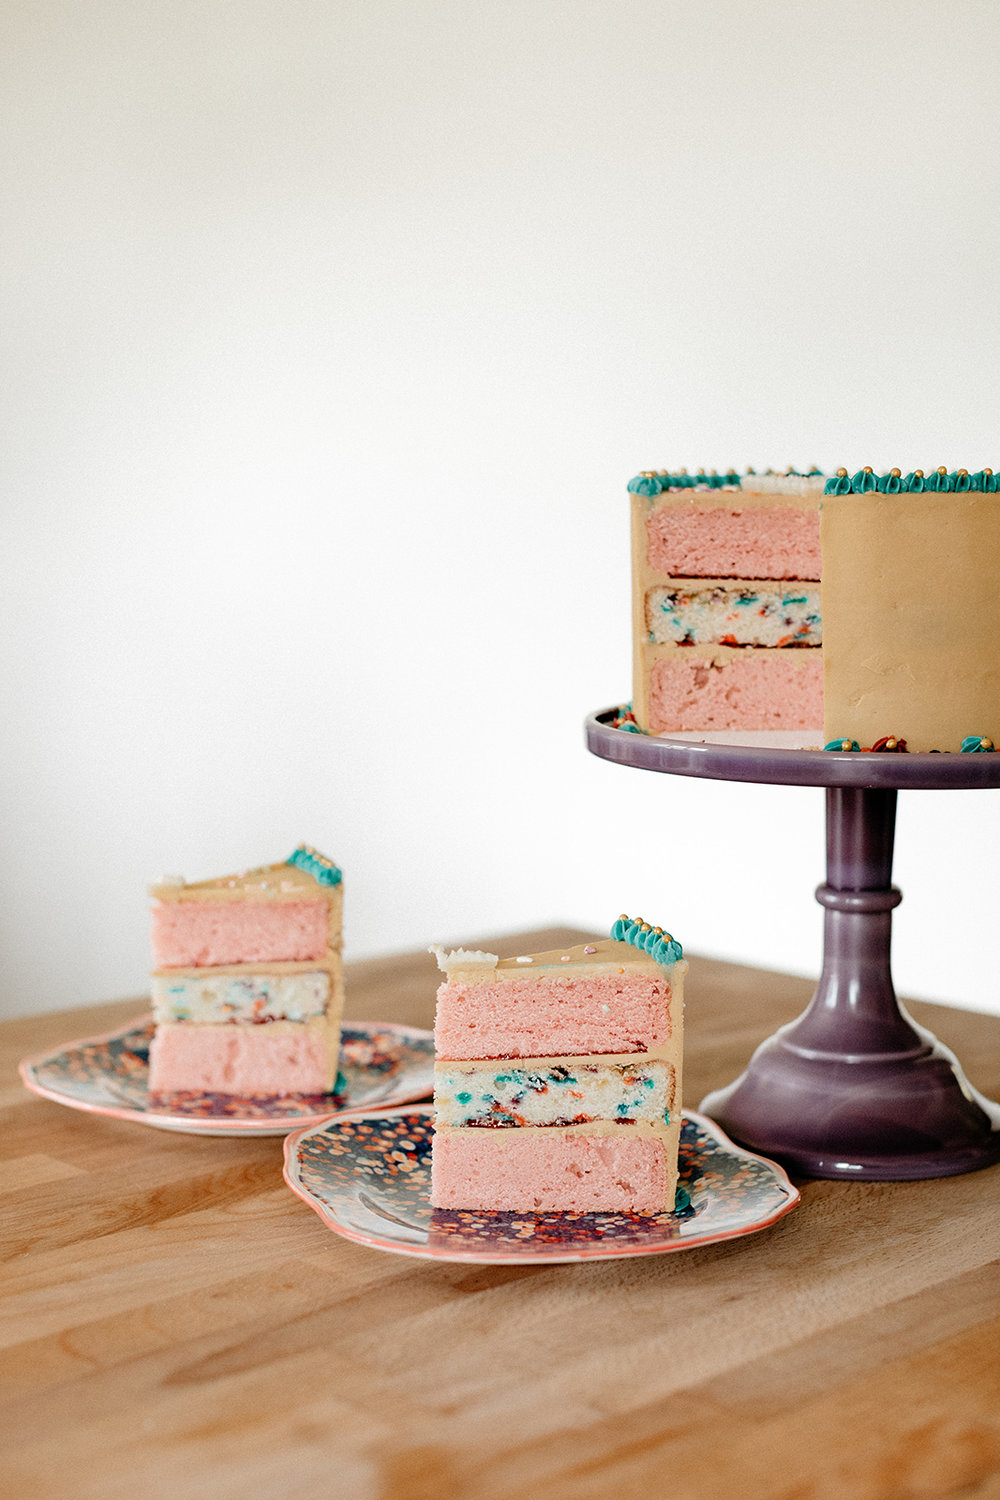 molly-yeh-rhubarb-birthday-cake-56.jpg